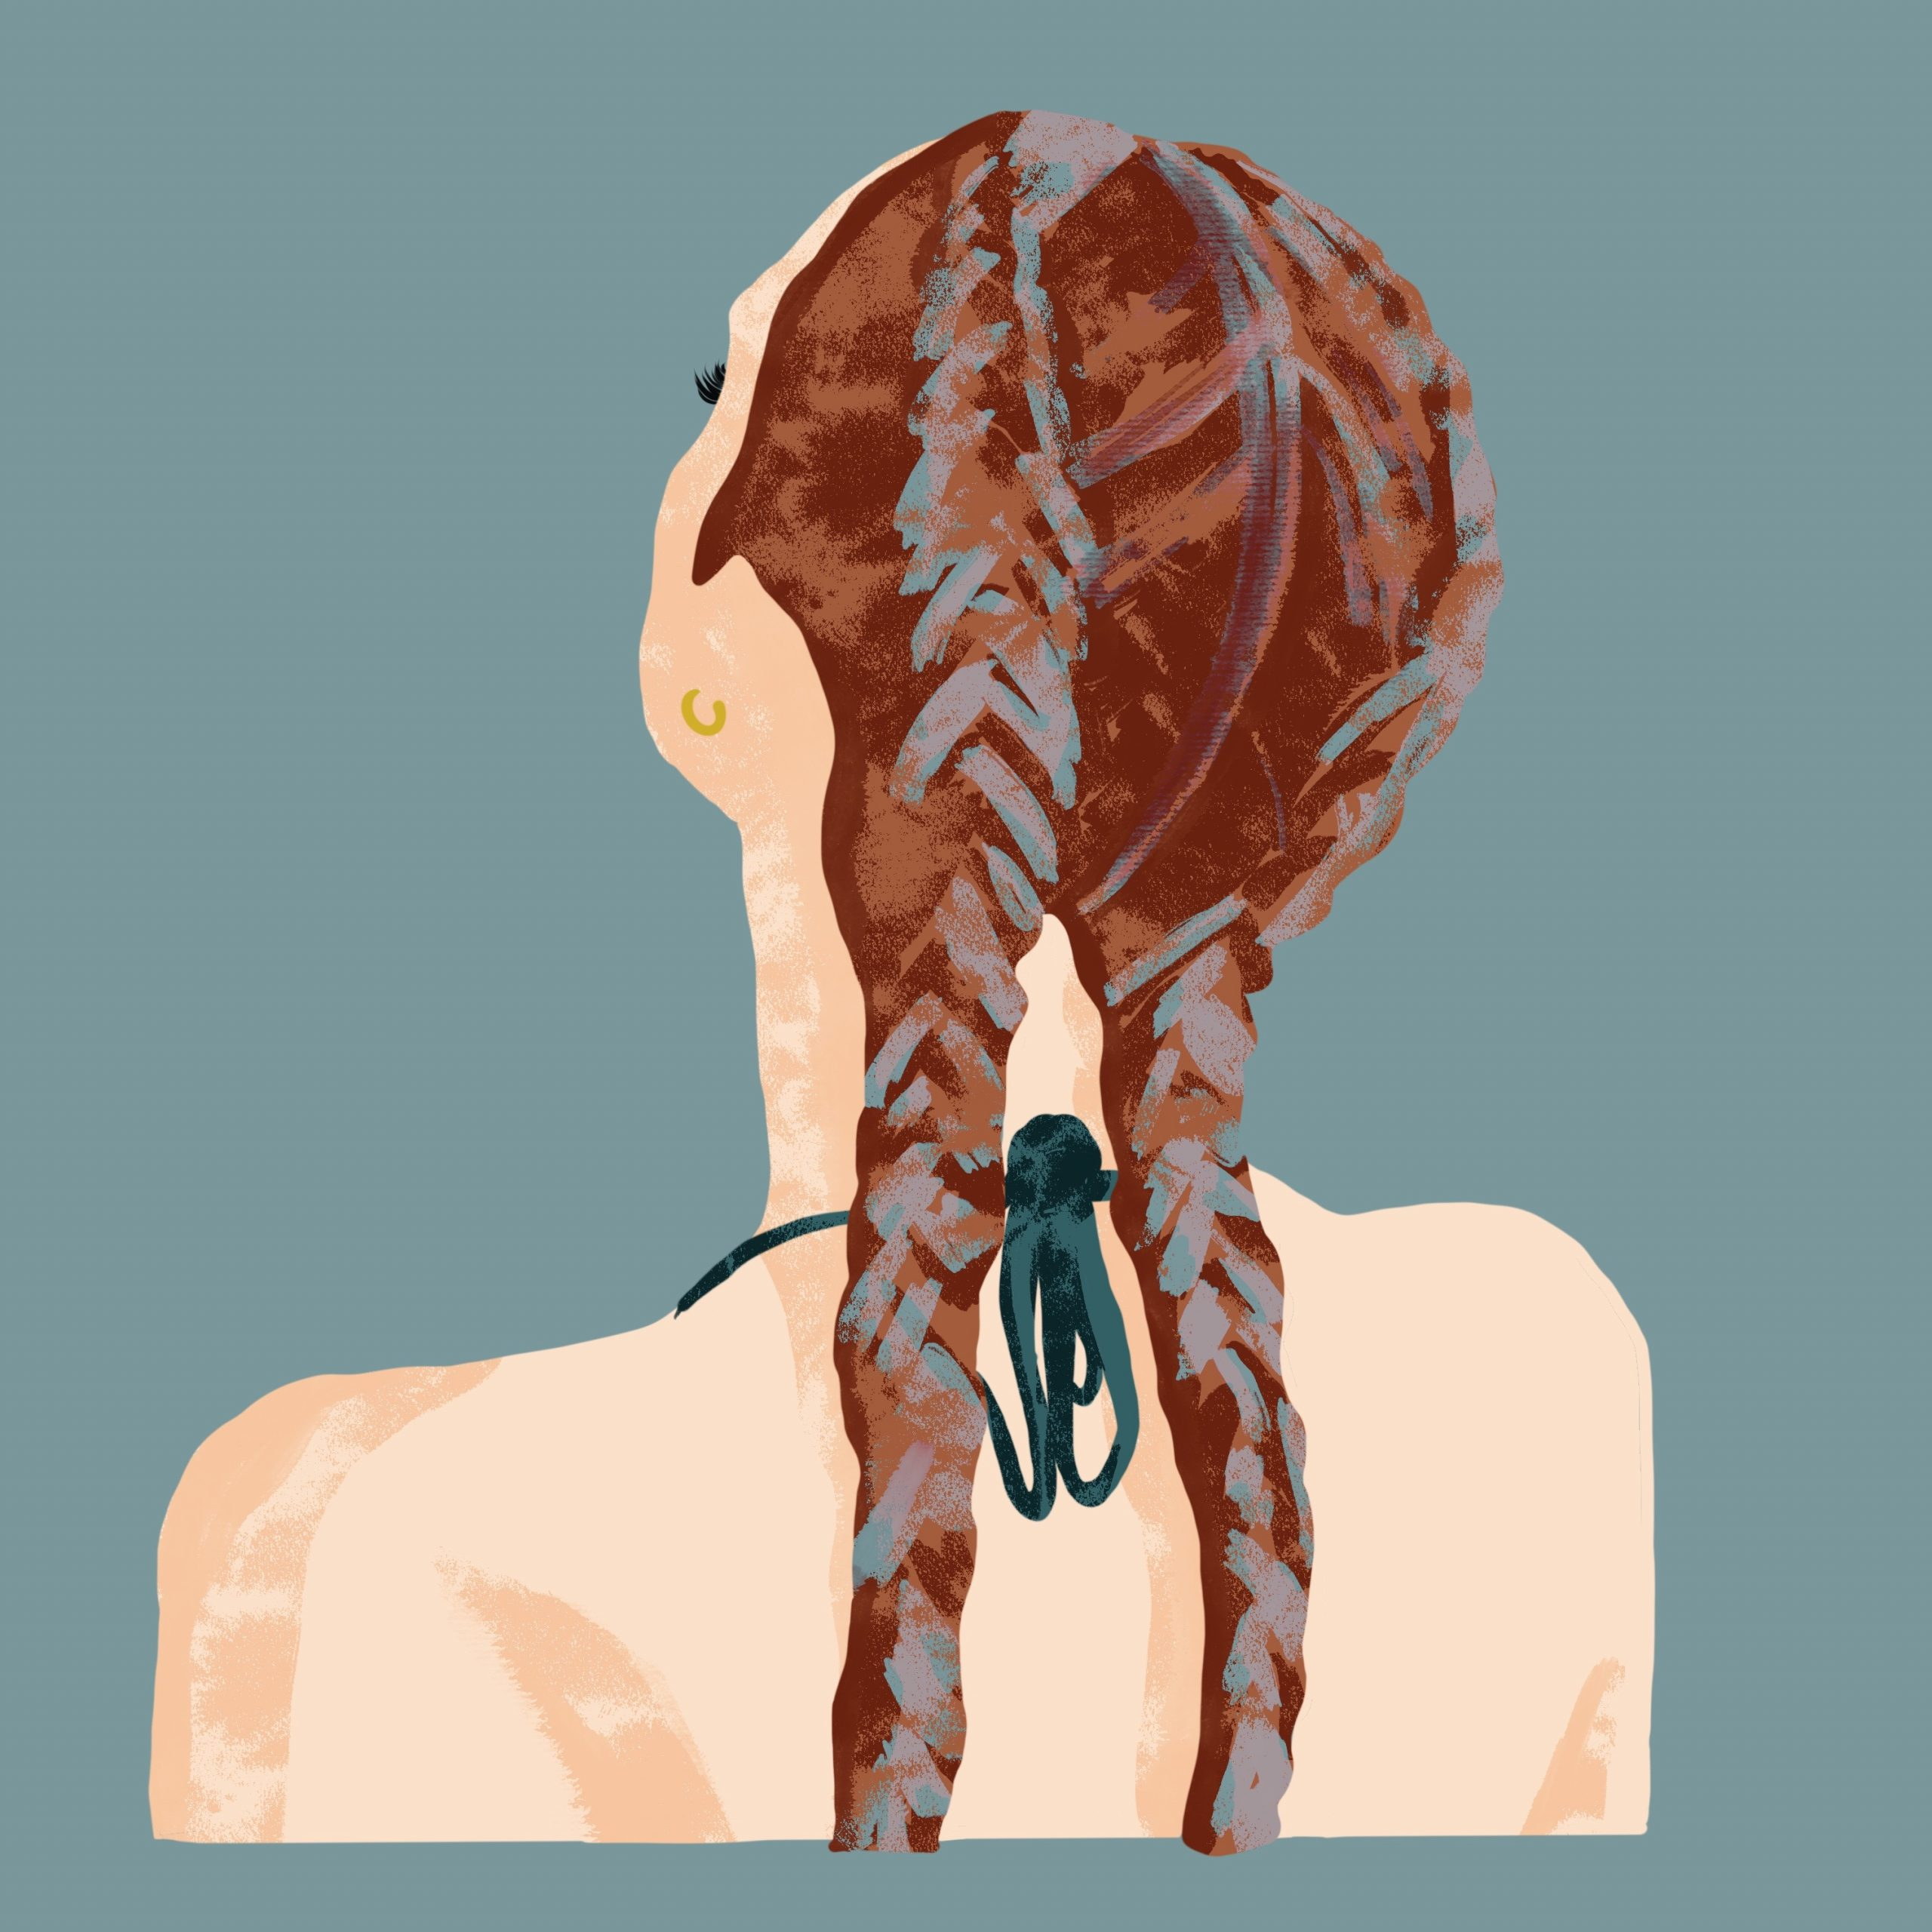 Girl with Braids